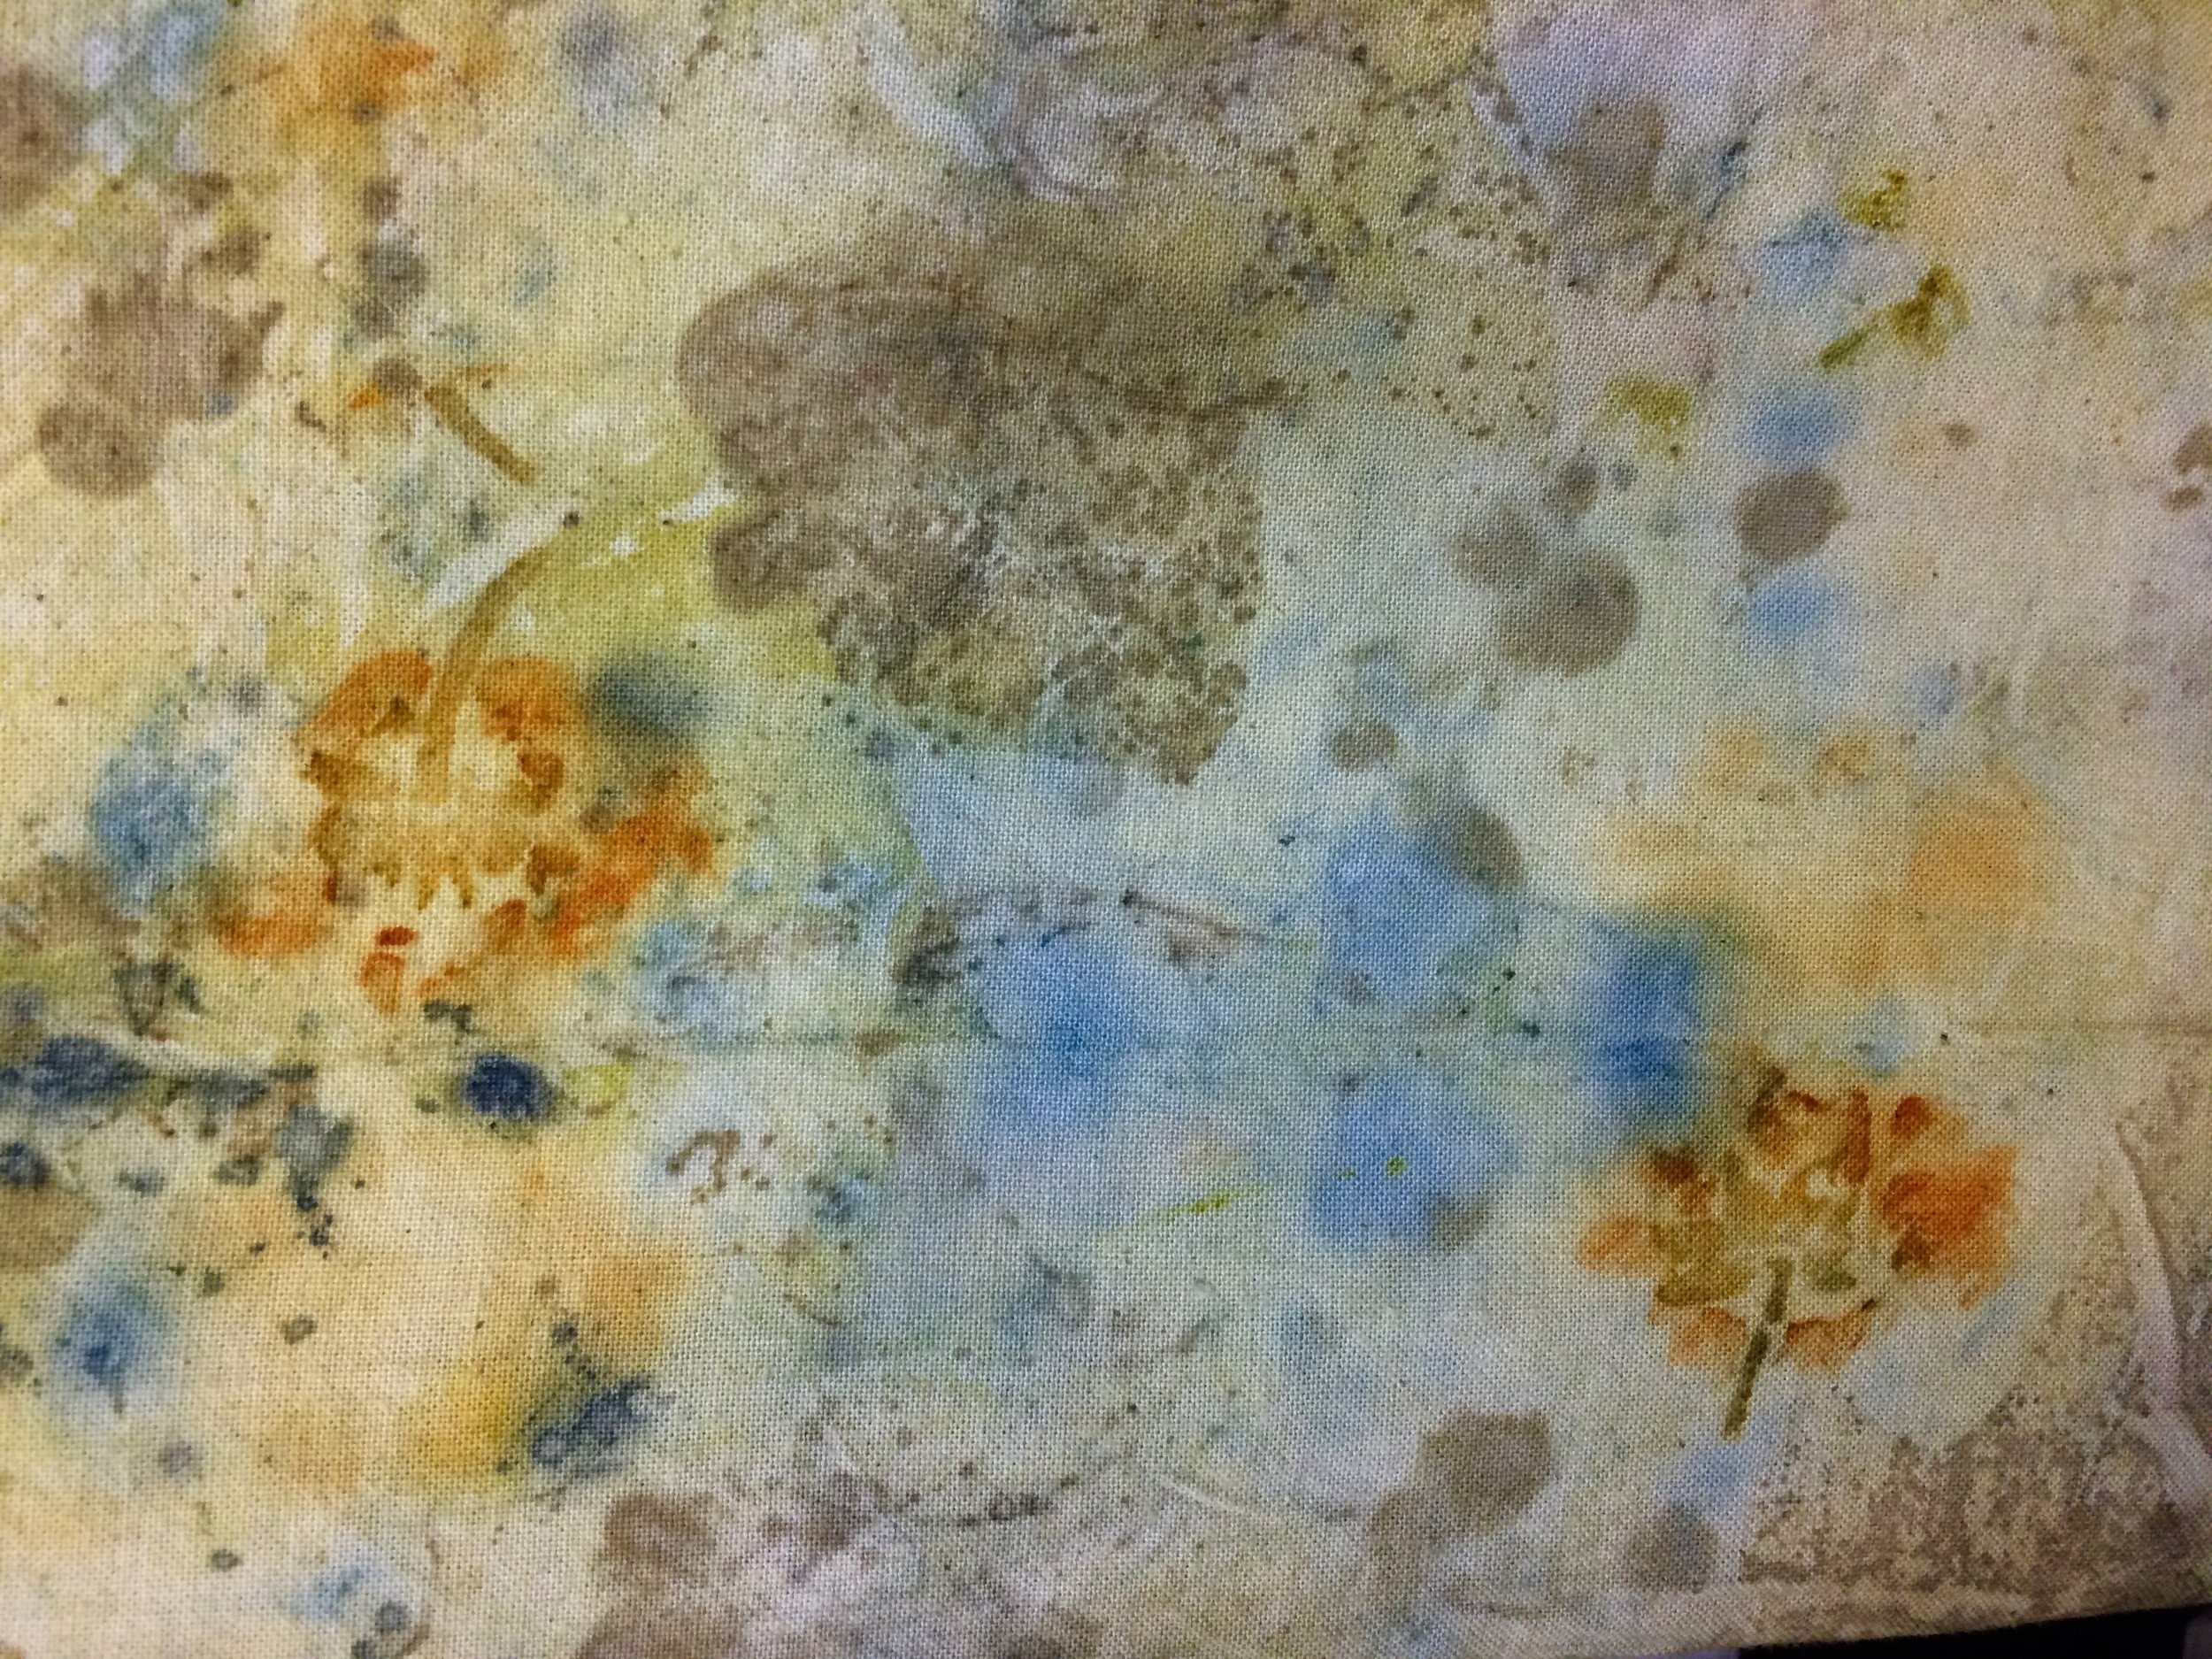 spiderwort, coreopsis, and oak eco print on linen